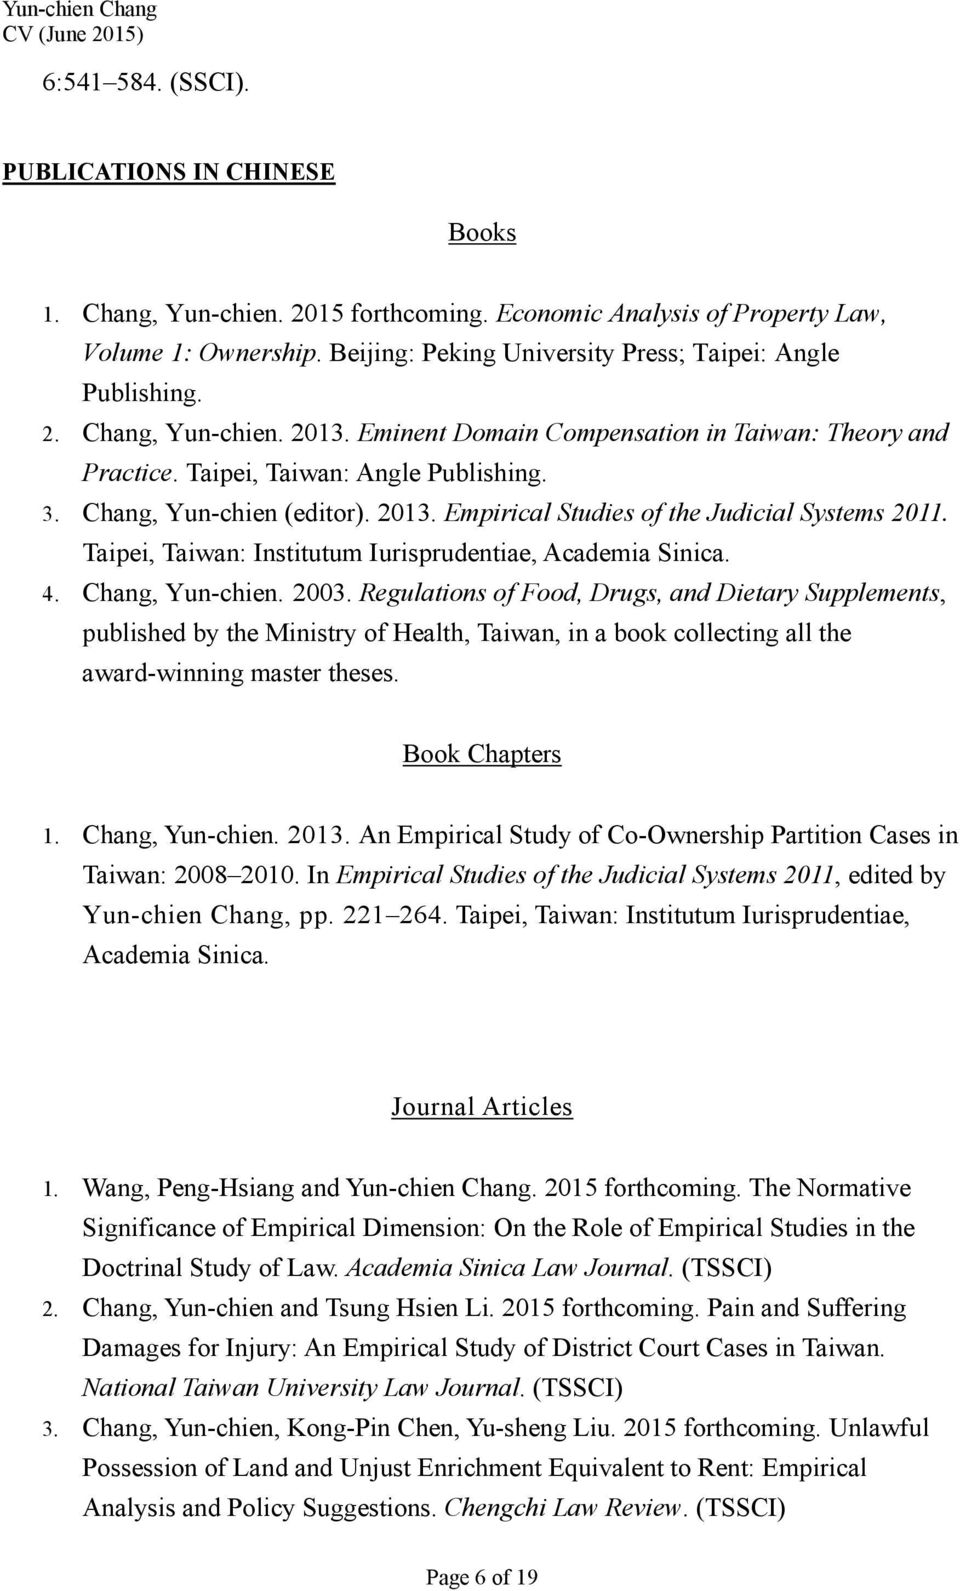 Chang, Yun-chien (editor). 2013. Empirical Studies of the Judicial Systems 2011. Taipei, Taiwan: Institutum Iurisprudentiae, Academia Sinica. 4. Chang, Yun-chien. 2003.